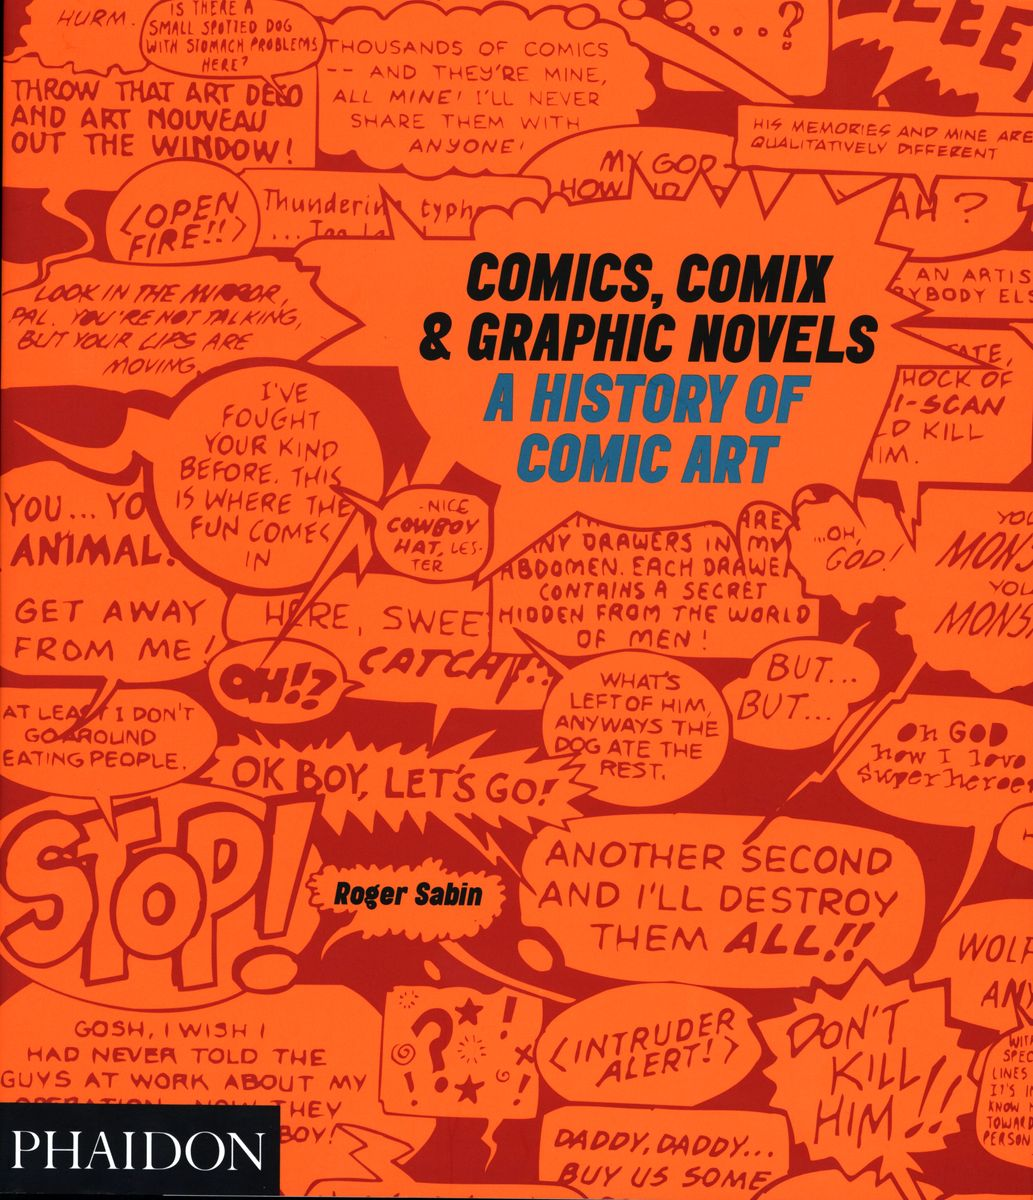 Comics, Comix & Graphic Novels. A History of Comic Art по 1 654.00 руб от изд. Phaidon